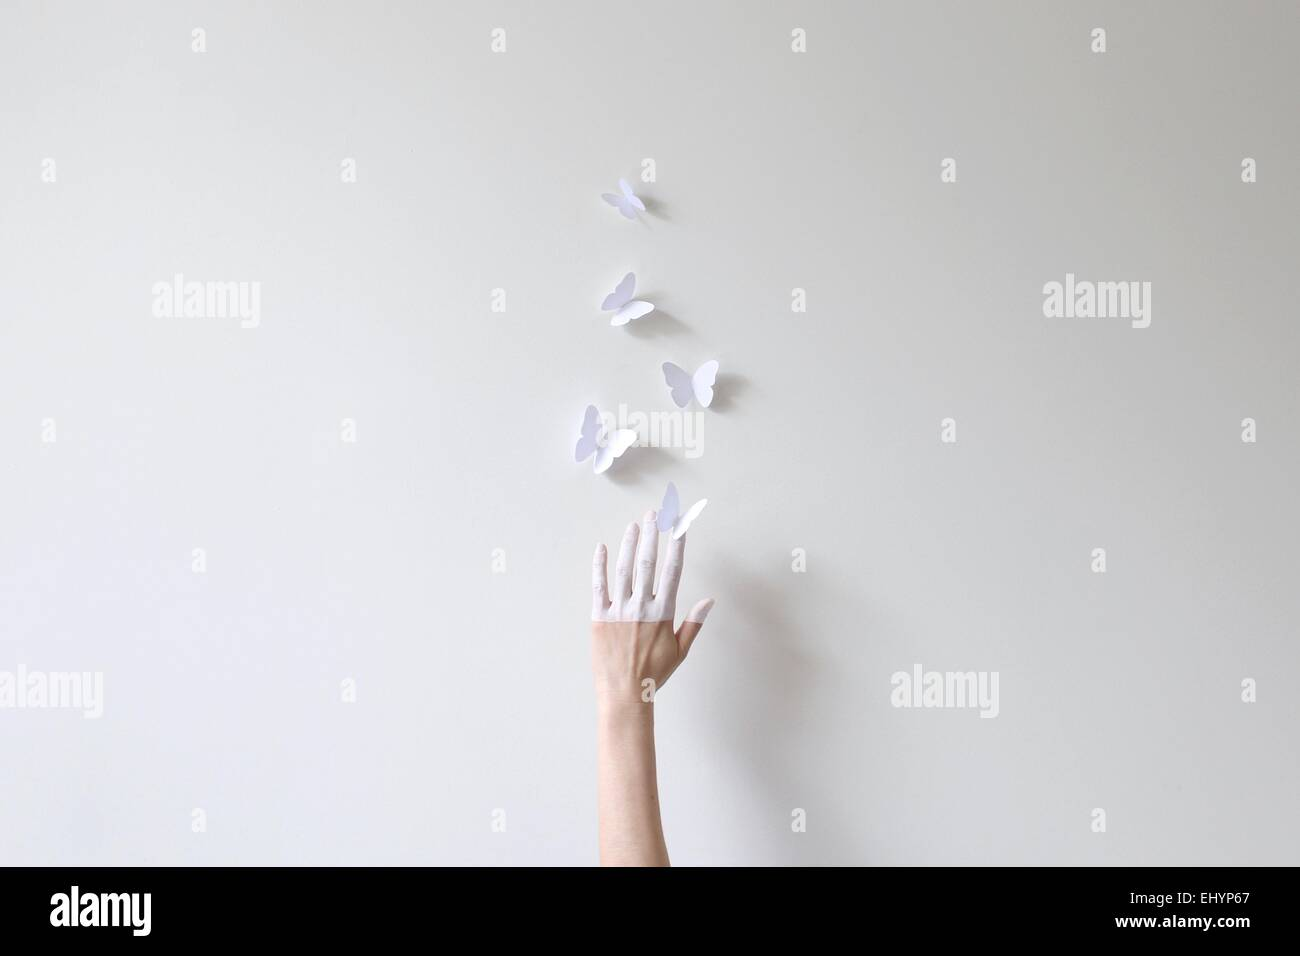 A hand half painted in white reaching for paper butterflies against white wall Stock Photo